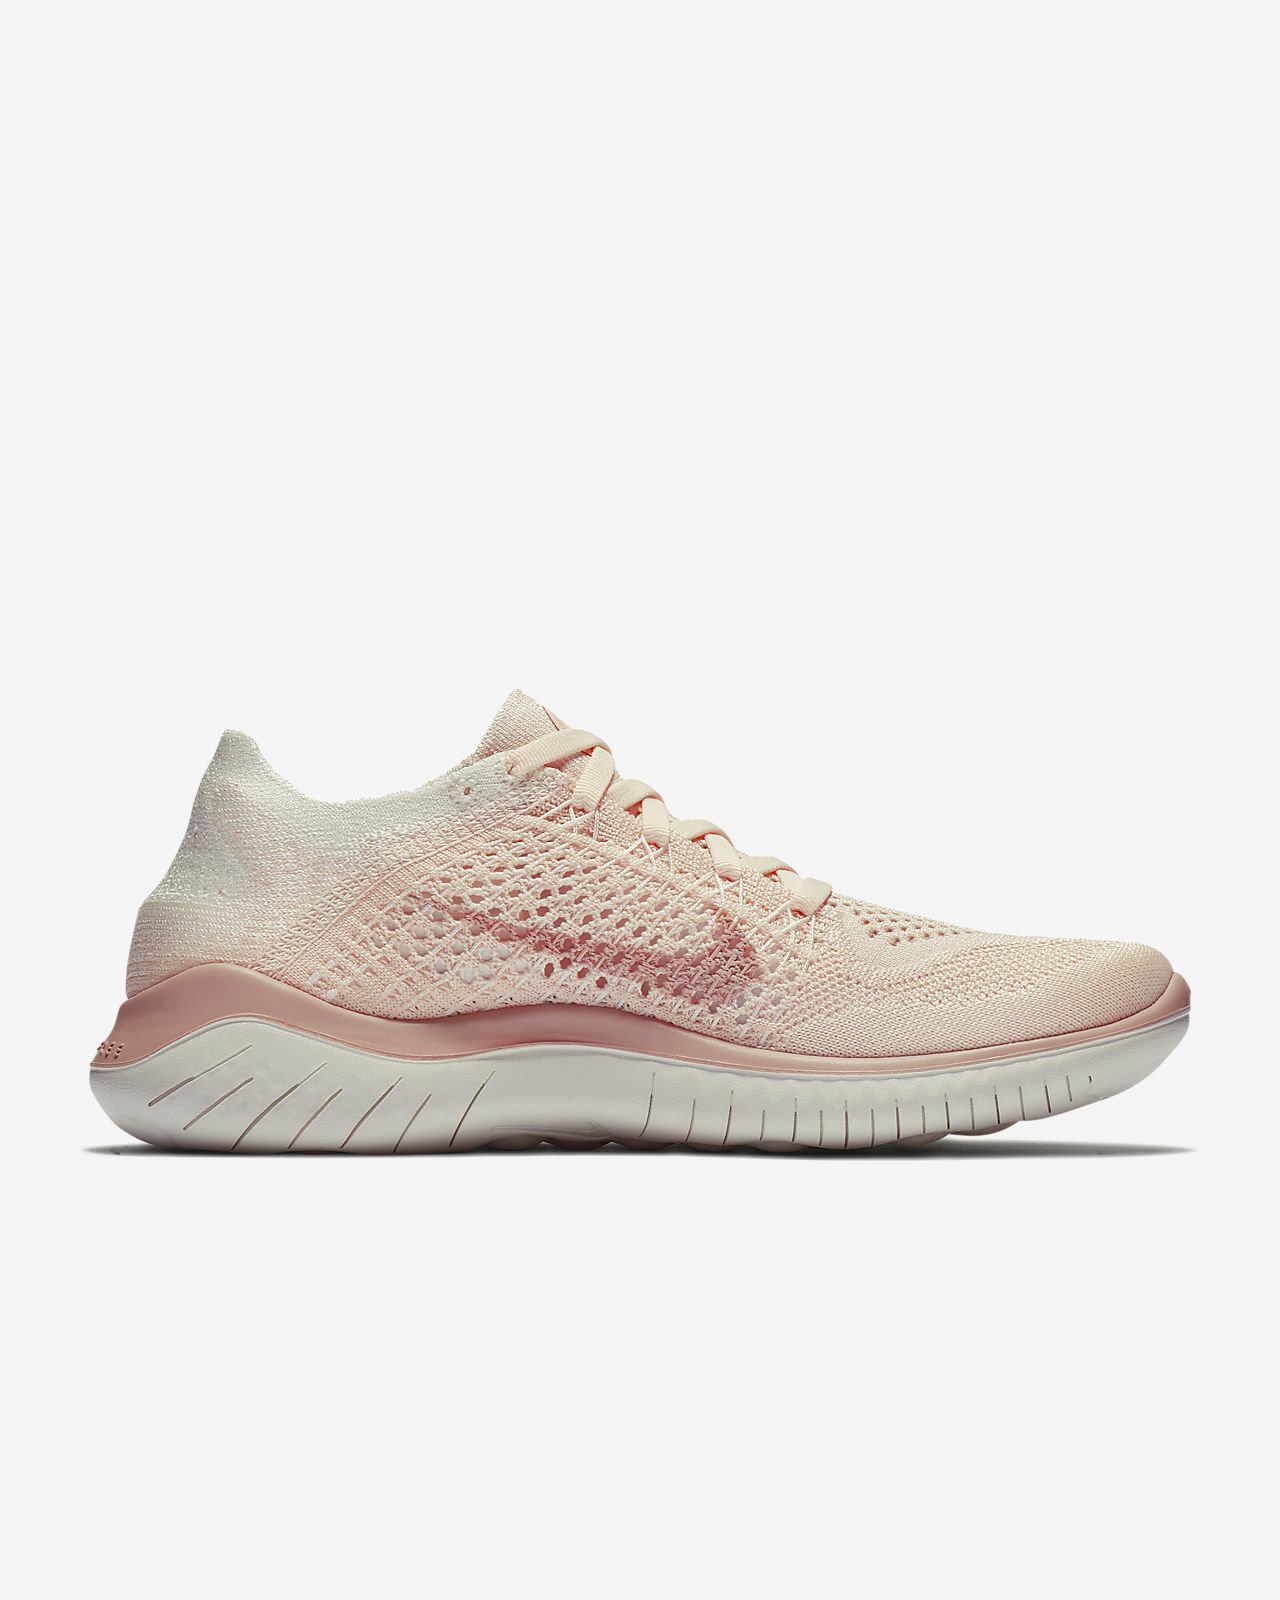 quality design 60a11 aa0a4 ... Nike Free RN Flyknit 2018 Womens Running Shoe